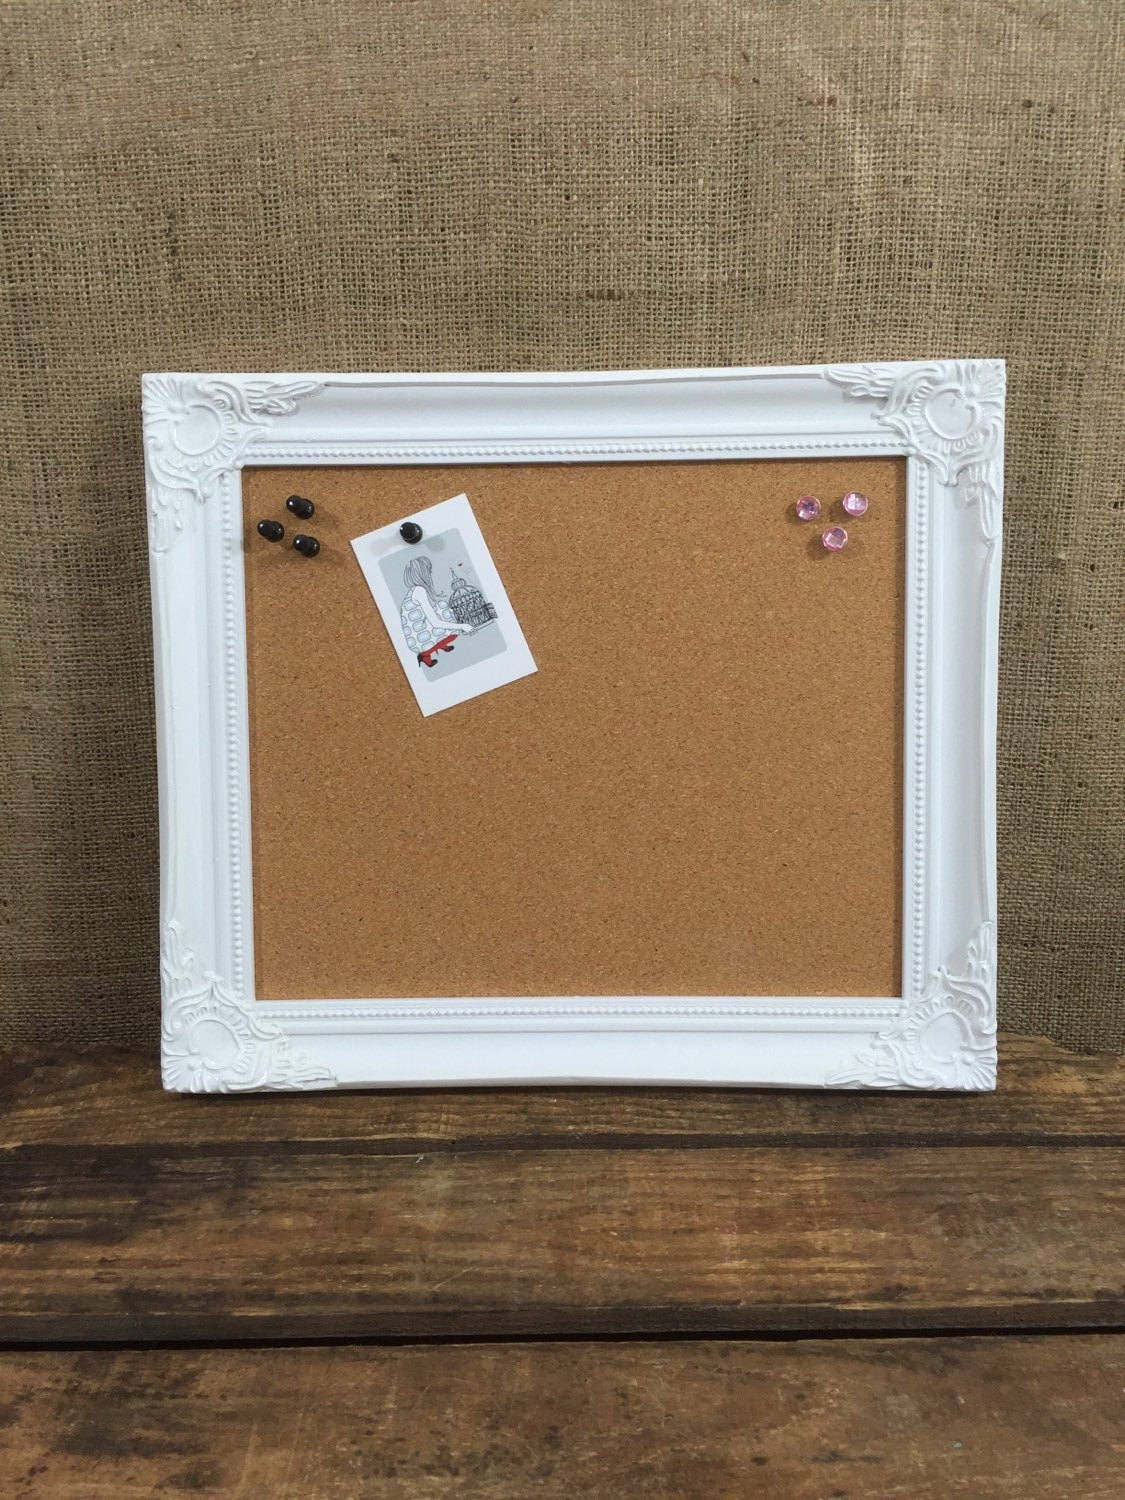 gallery photo gallery photo - White Framed Cork Board